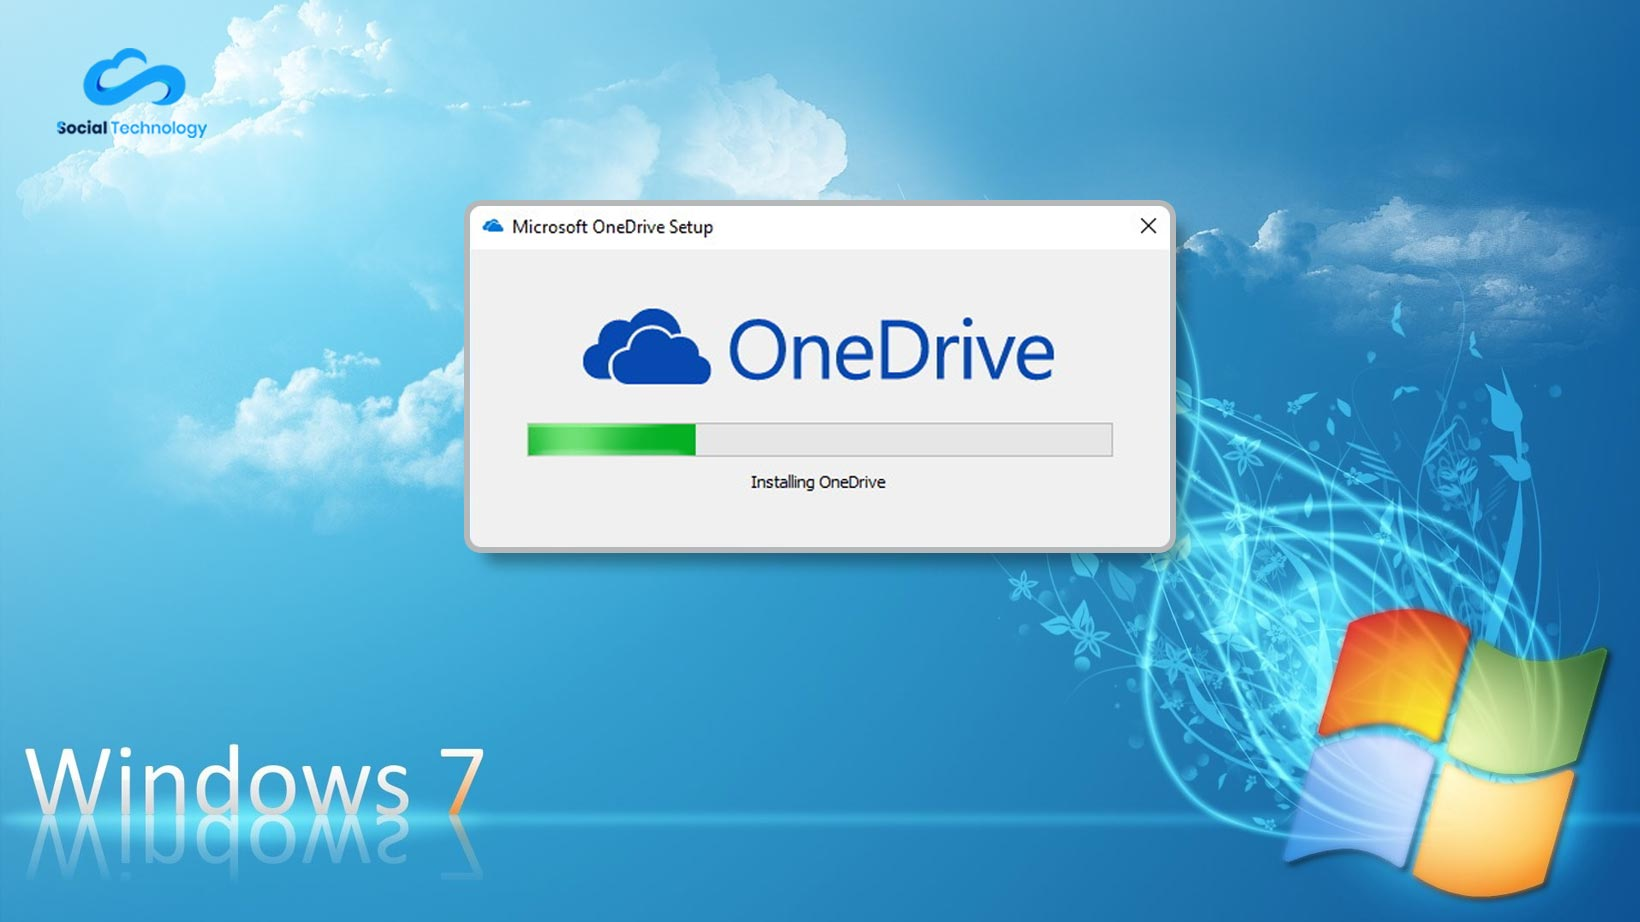 onedrive windows 7